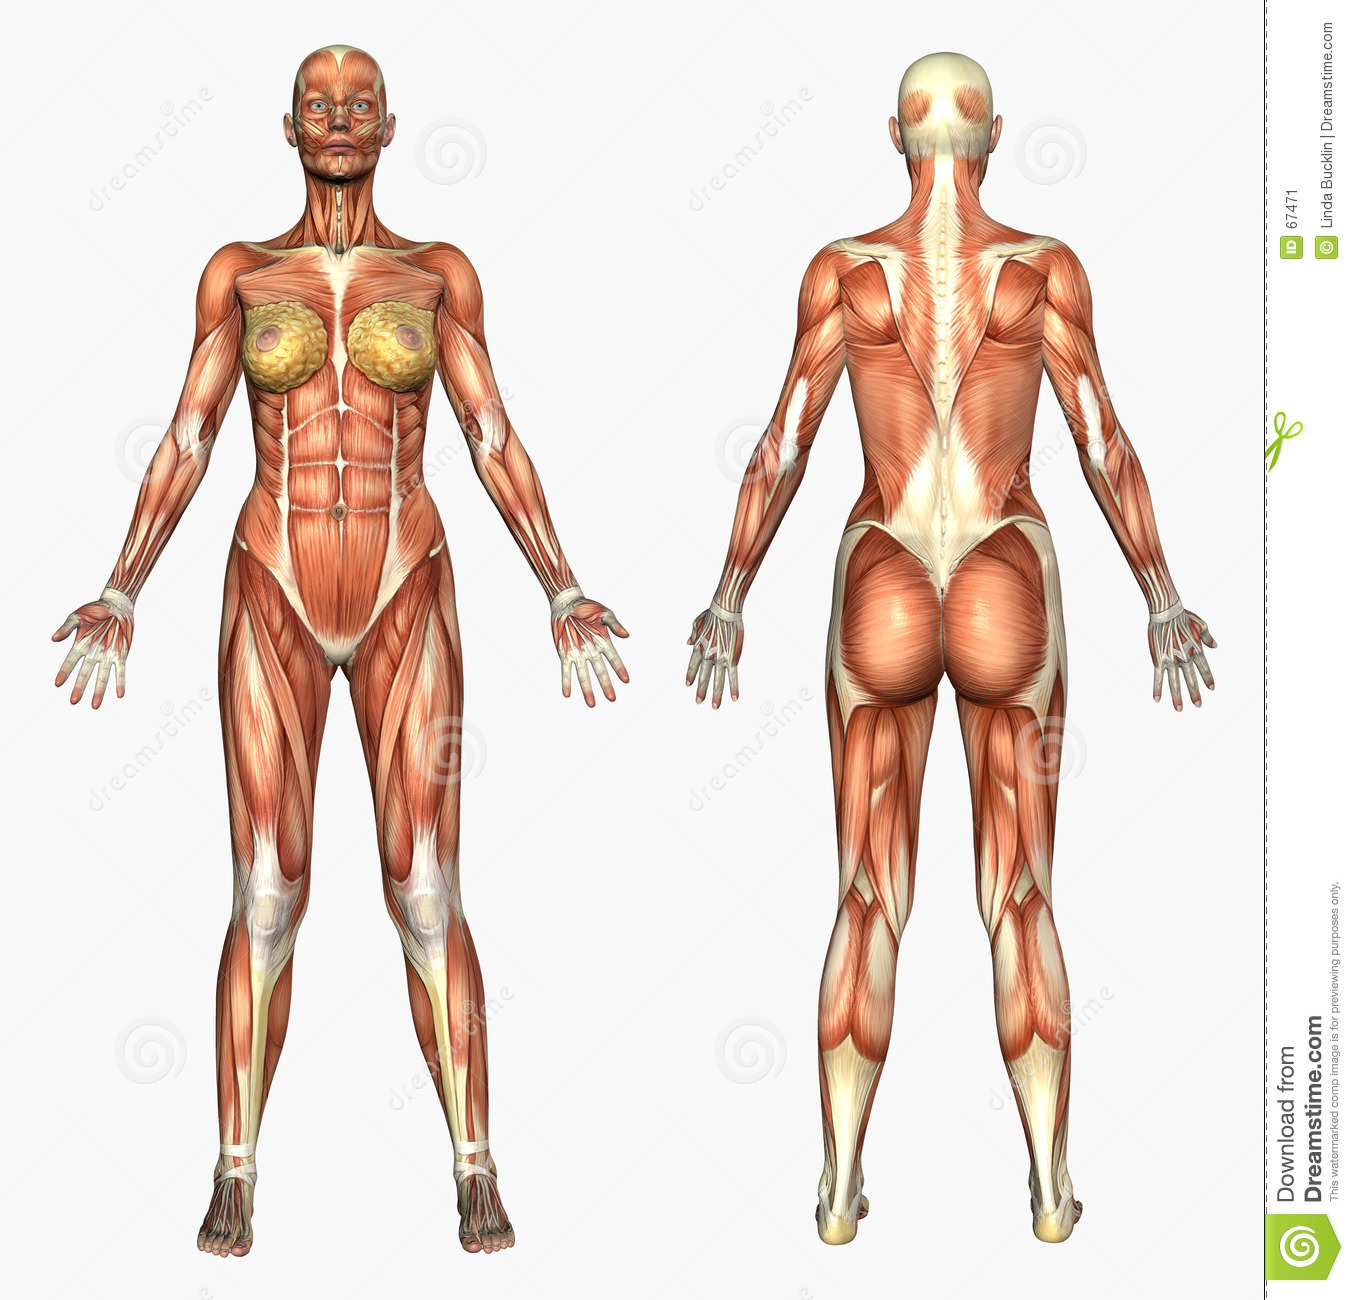 Human Anatomy - Muscle System - Female Stock Illustration ...